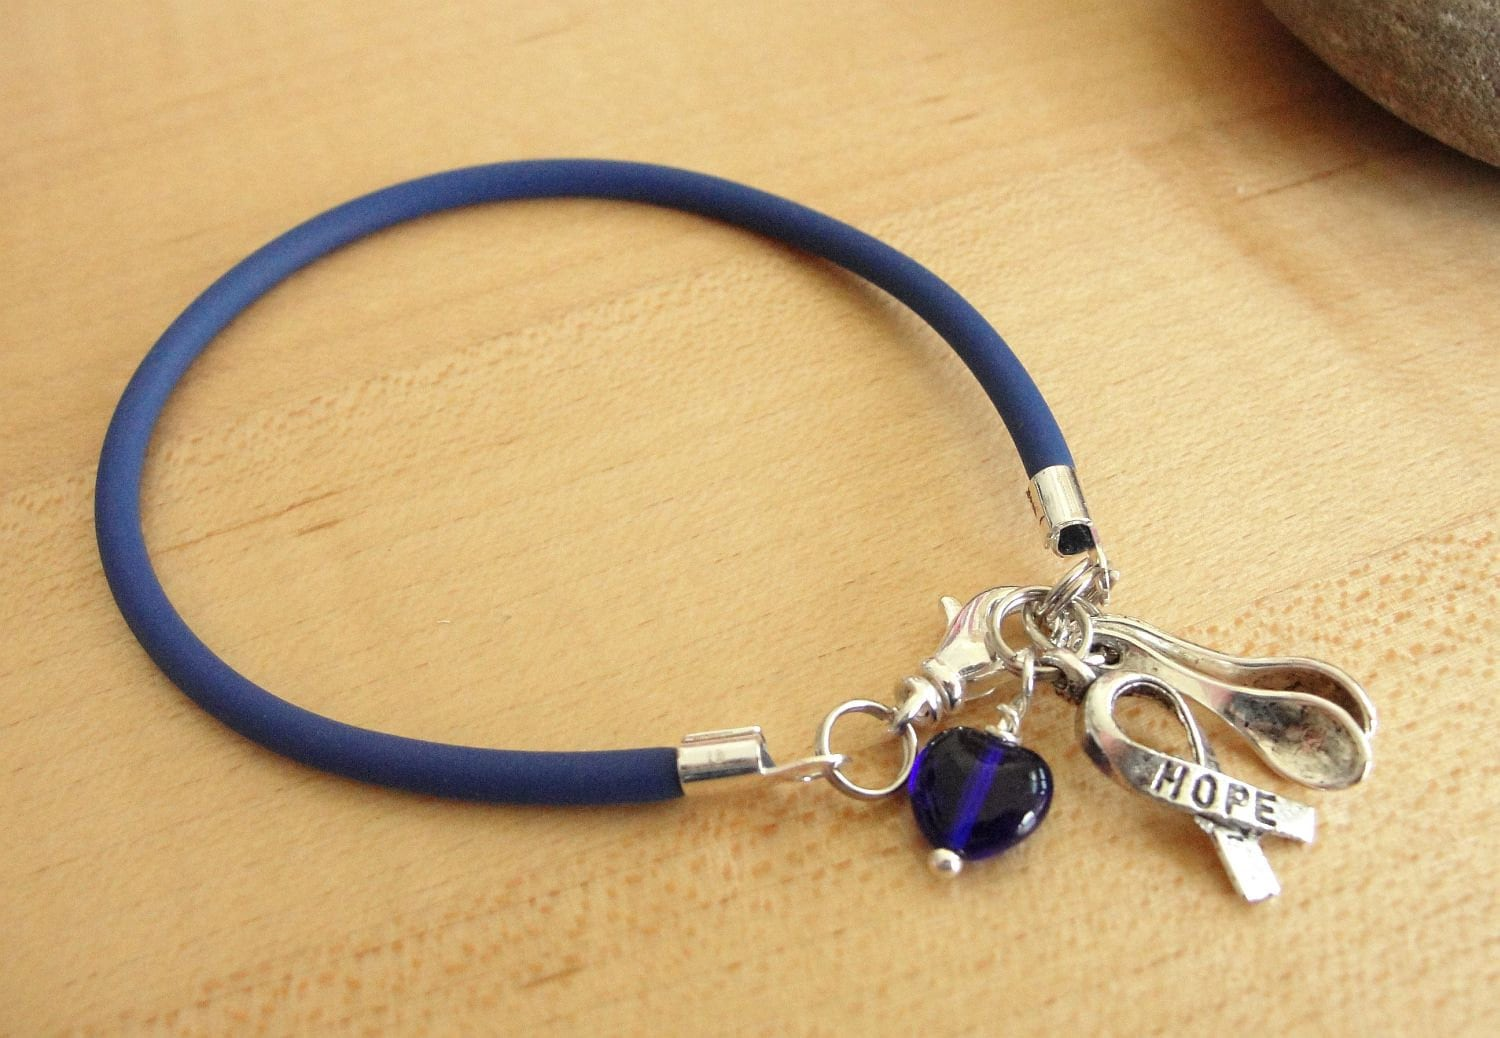 Blue Awareness Bracelet / Anklet - The Spoon Theory - POTS, Dysautonomia, ARDS, Arthritis, Chronic Fatigue, & More